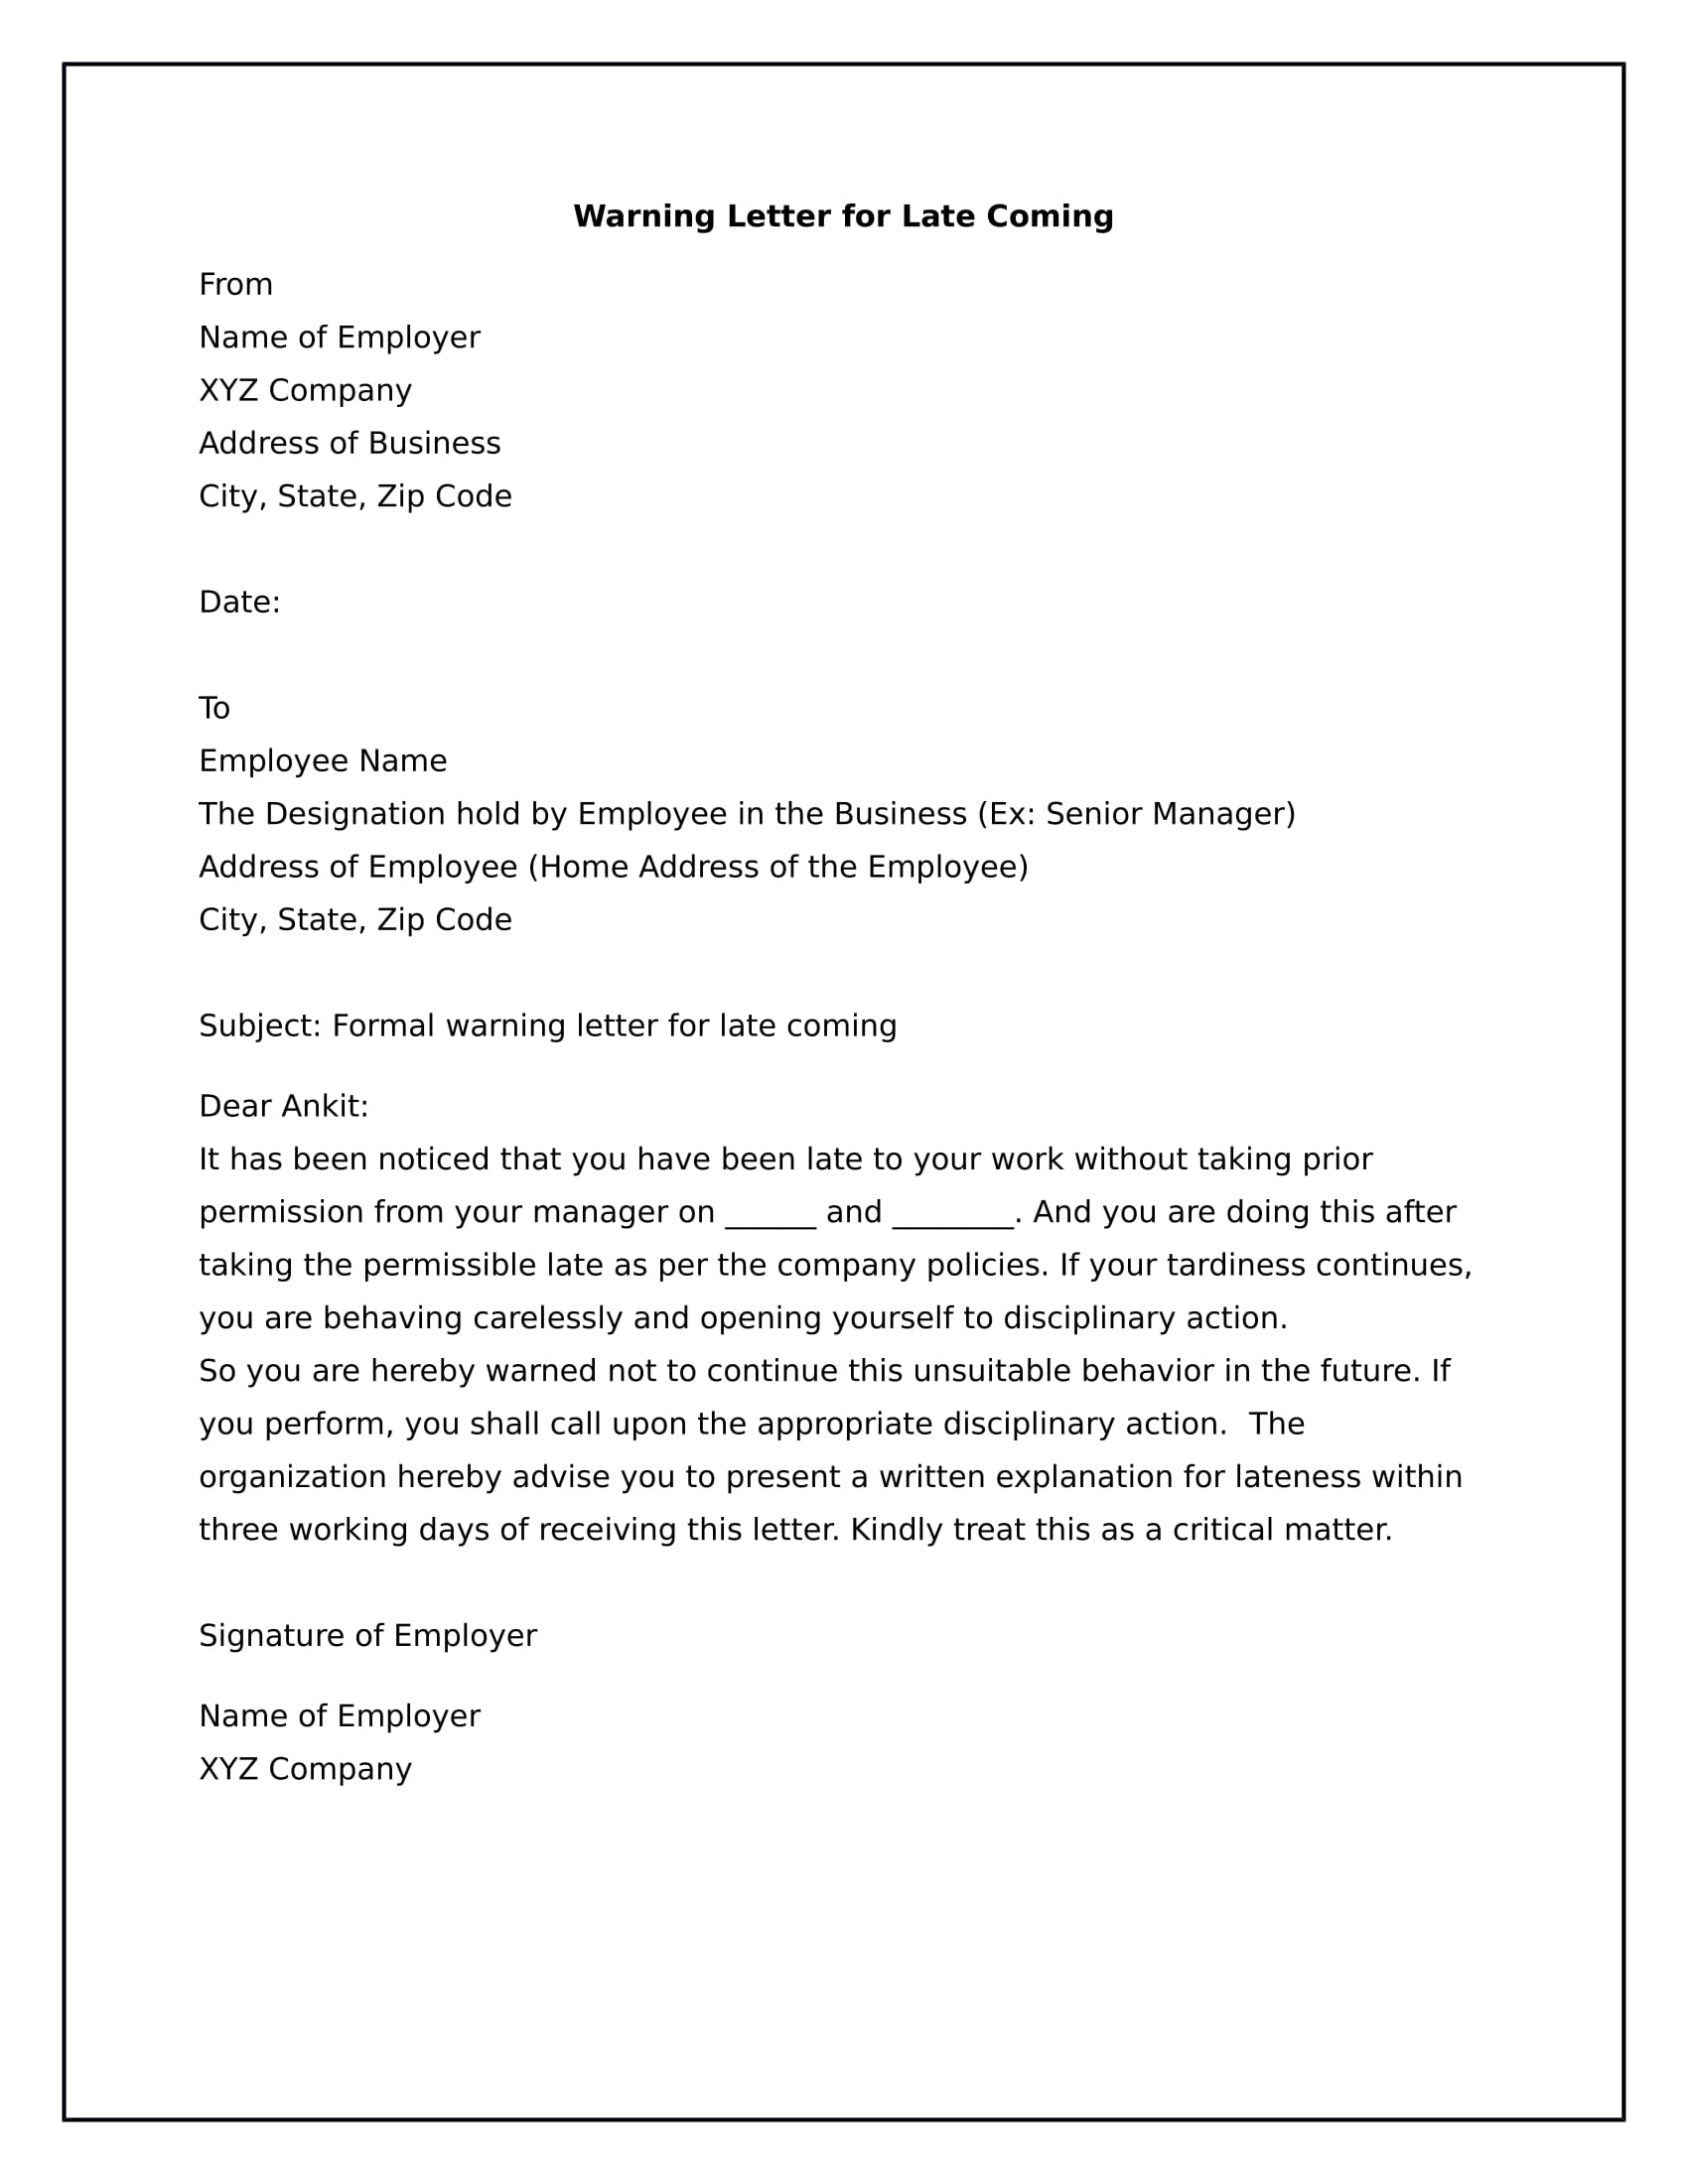 Sample warning letter to employee for tardiness